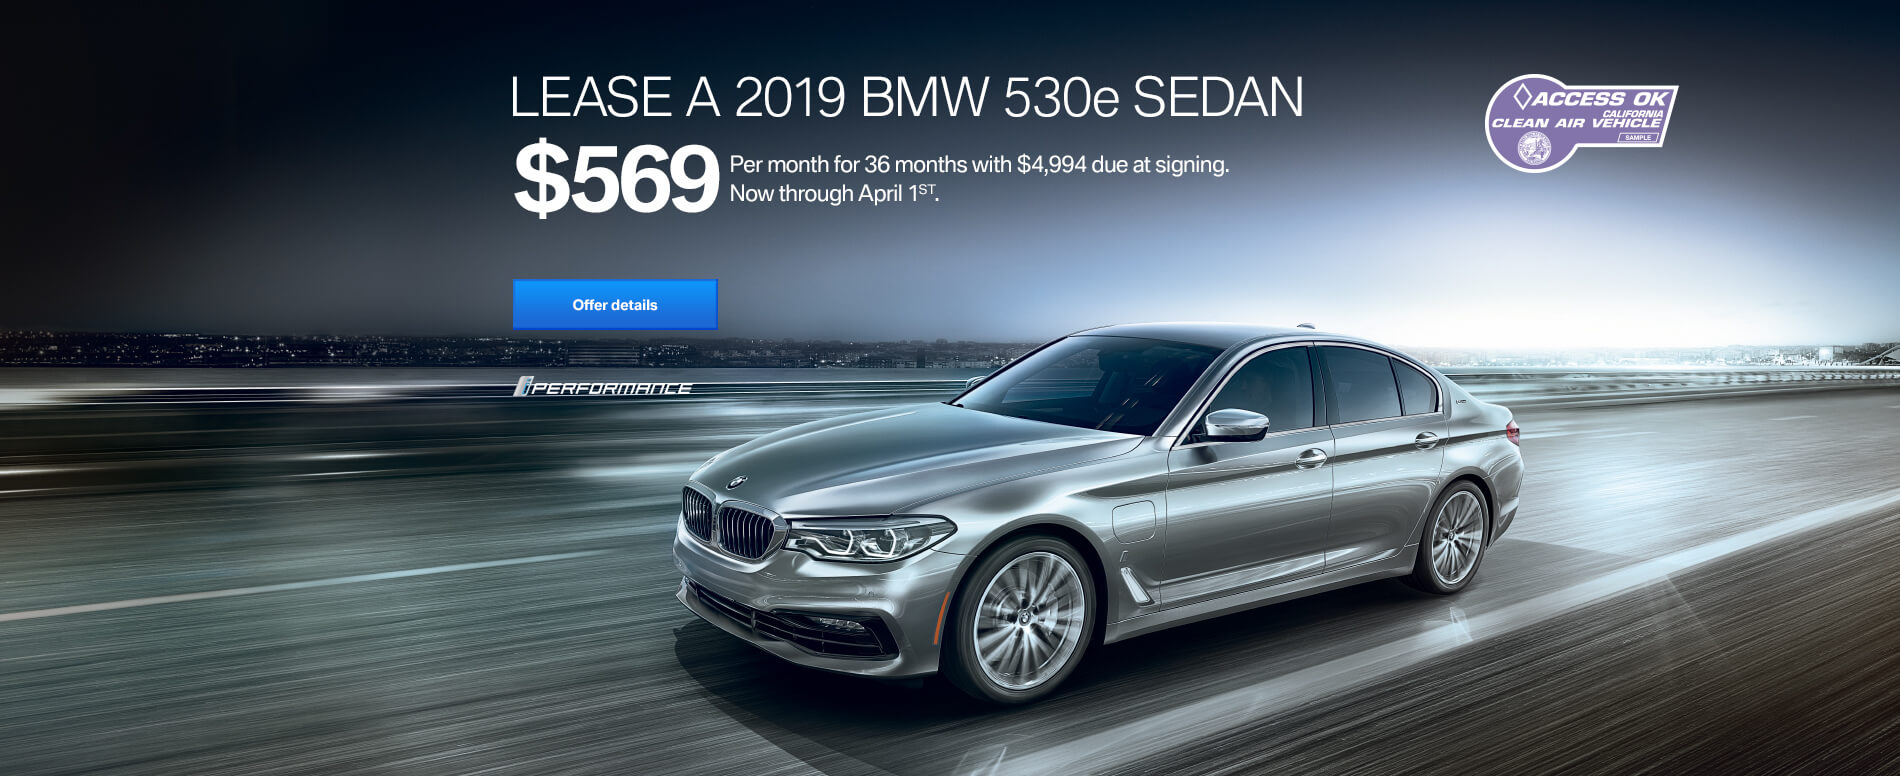 LEASE A 2019 BMW 530e FOR $569/MONTH FOR 36 MONTHS WITH $4,994 D